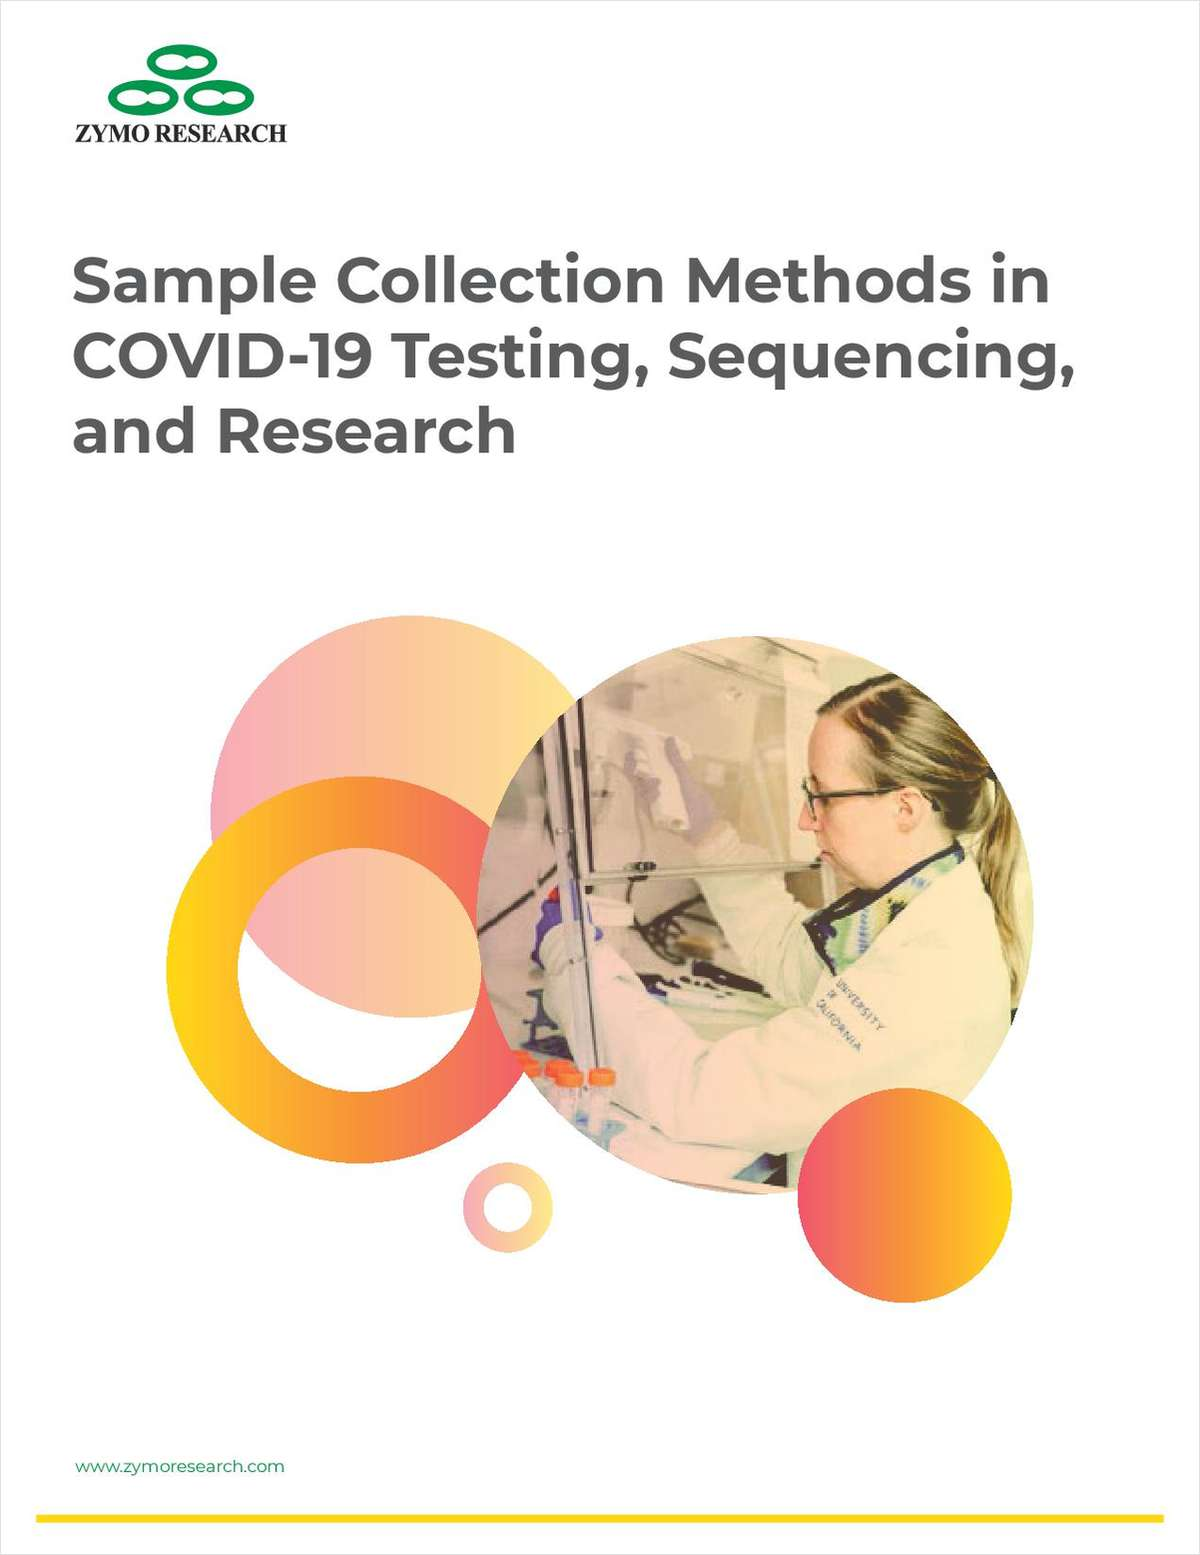 Sample Collection Methods in COVID-19 Testing, Sequencing, and Research